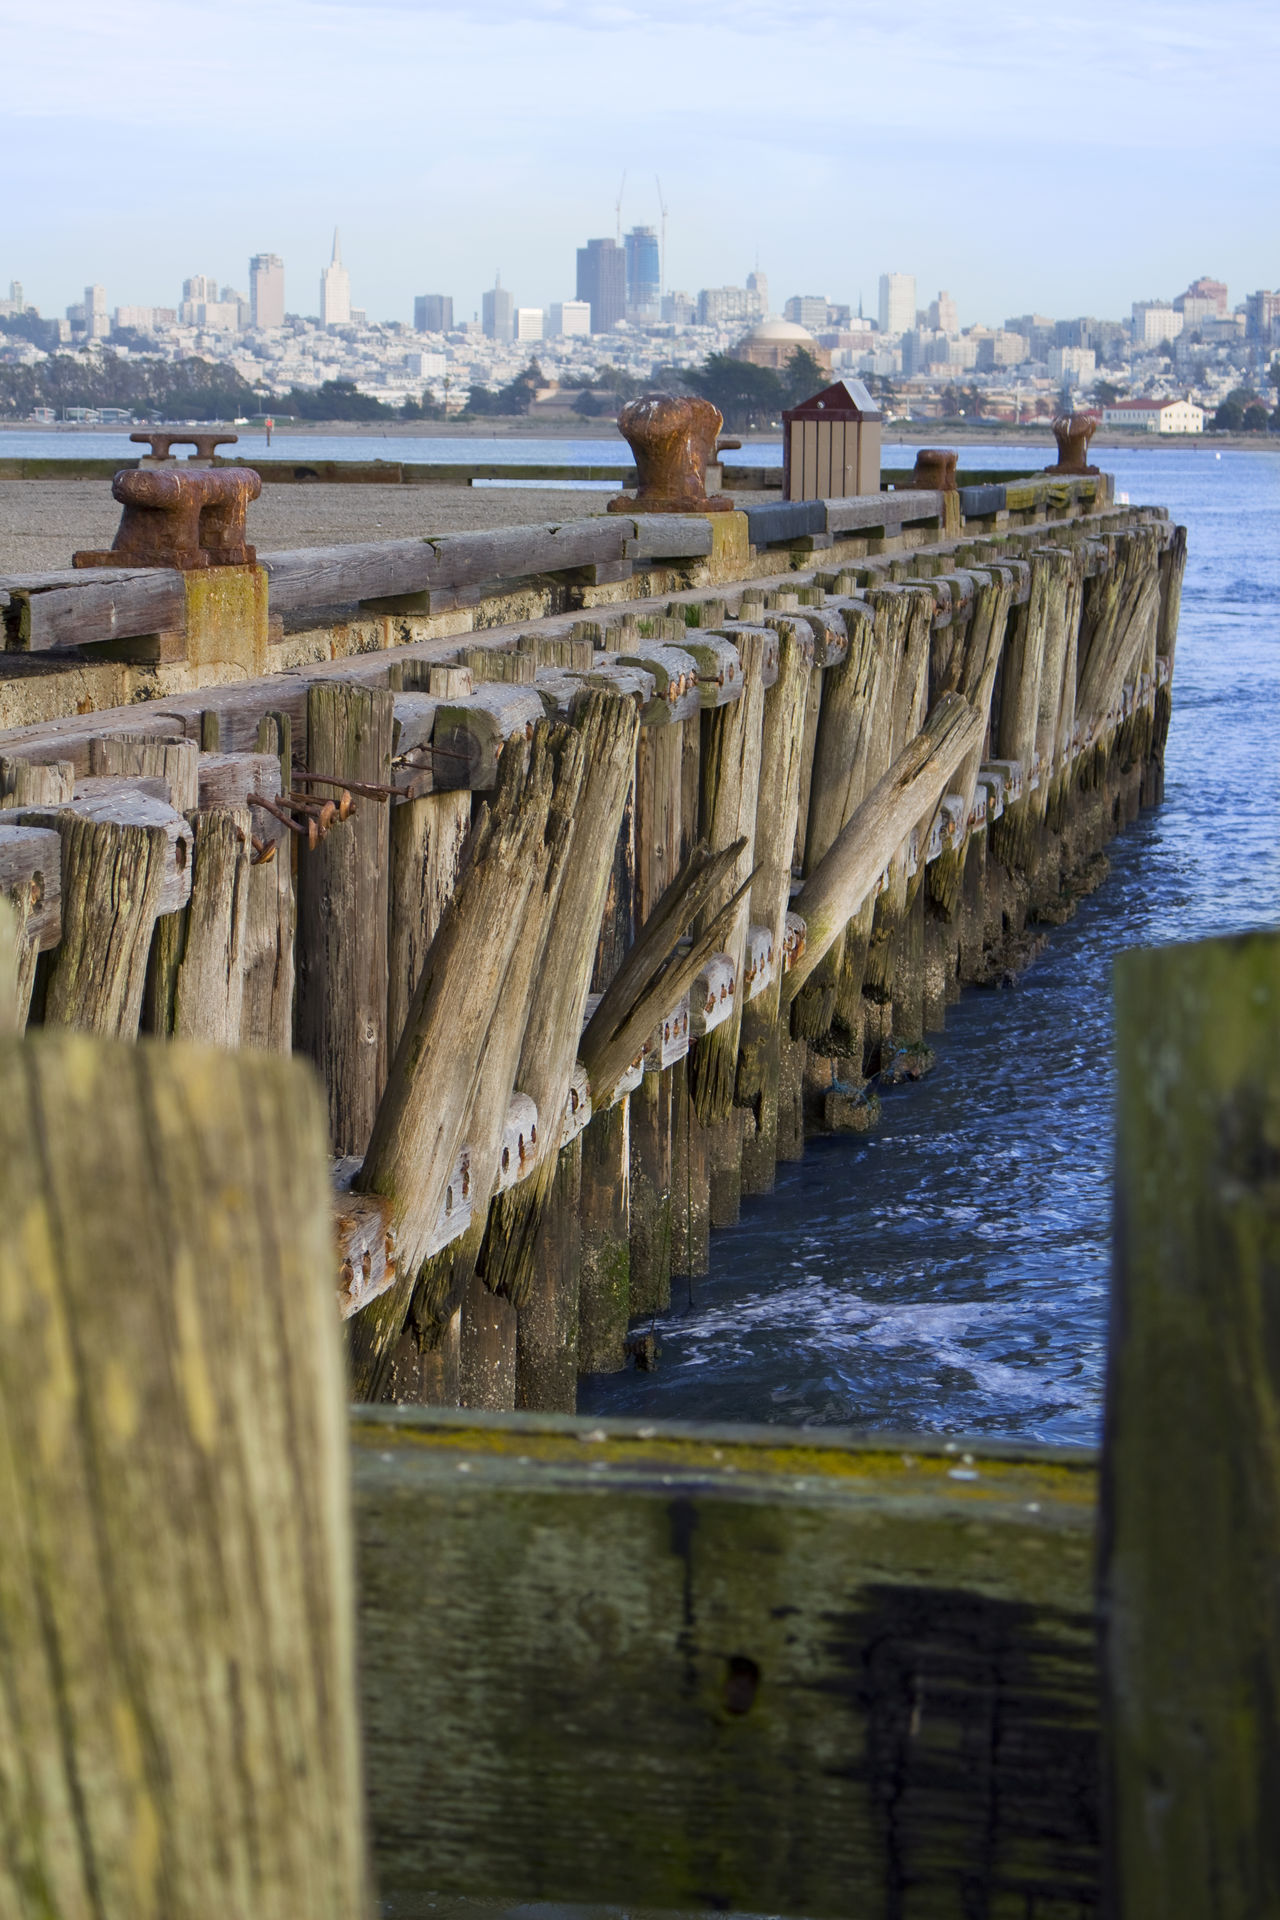 A pier on the San Francisco bay. Architecture Building Exterior Built Structure City Cityscapes Day No People Ocean View Oceanside Outdoors Pier San Francisco San Francisco Bay Sea Sky Urban Urban Landscape Urban Skyline Urbanphotography Water Wooden Structure